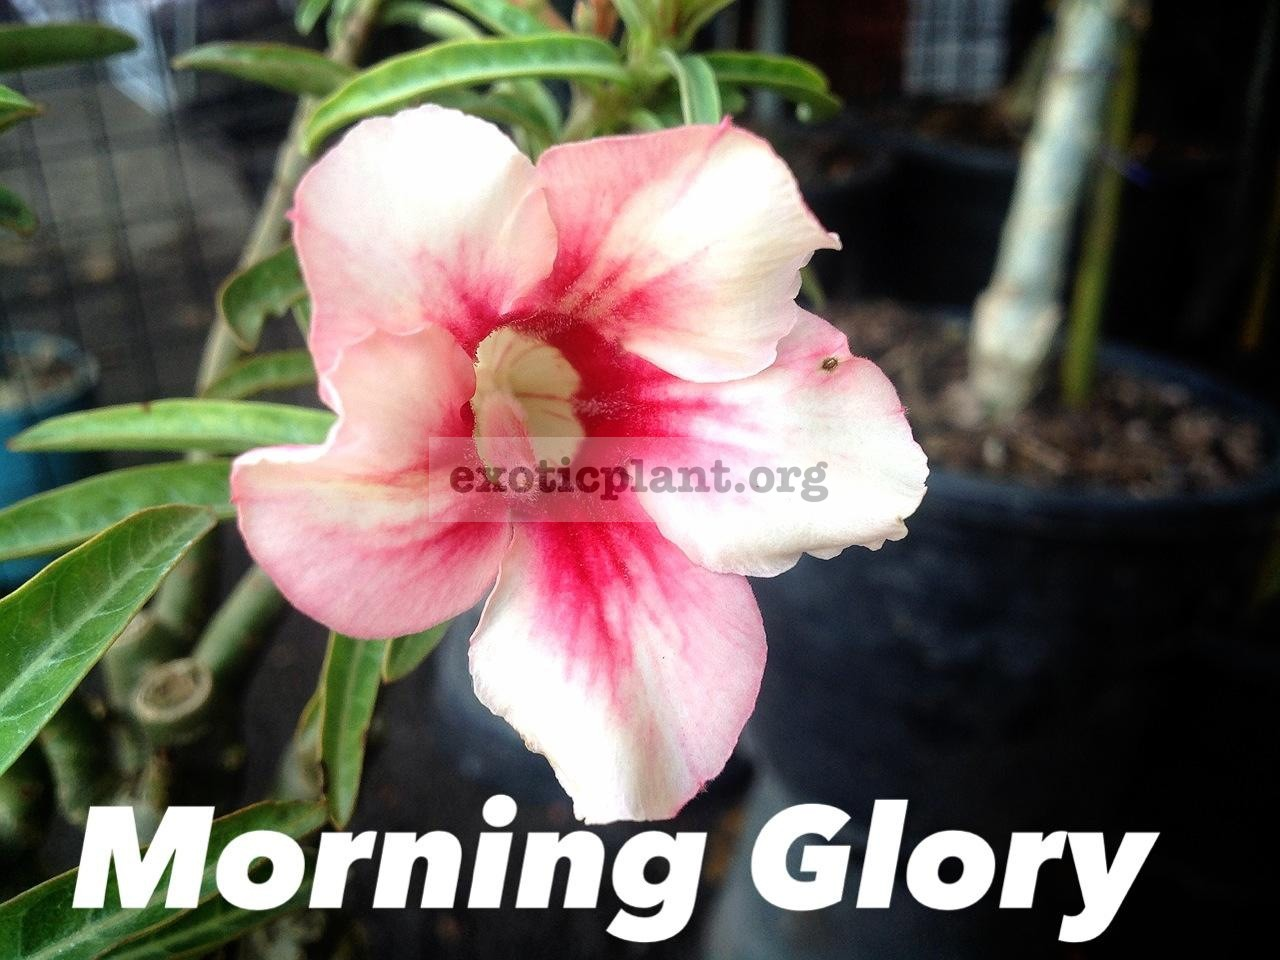 adenium Morning Glory 16